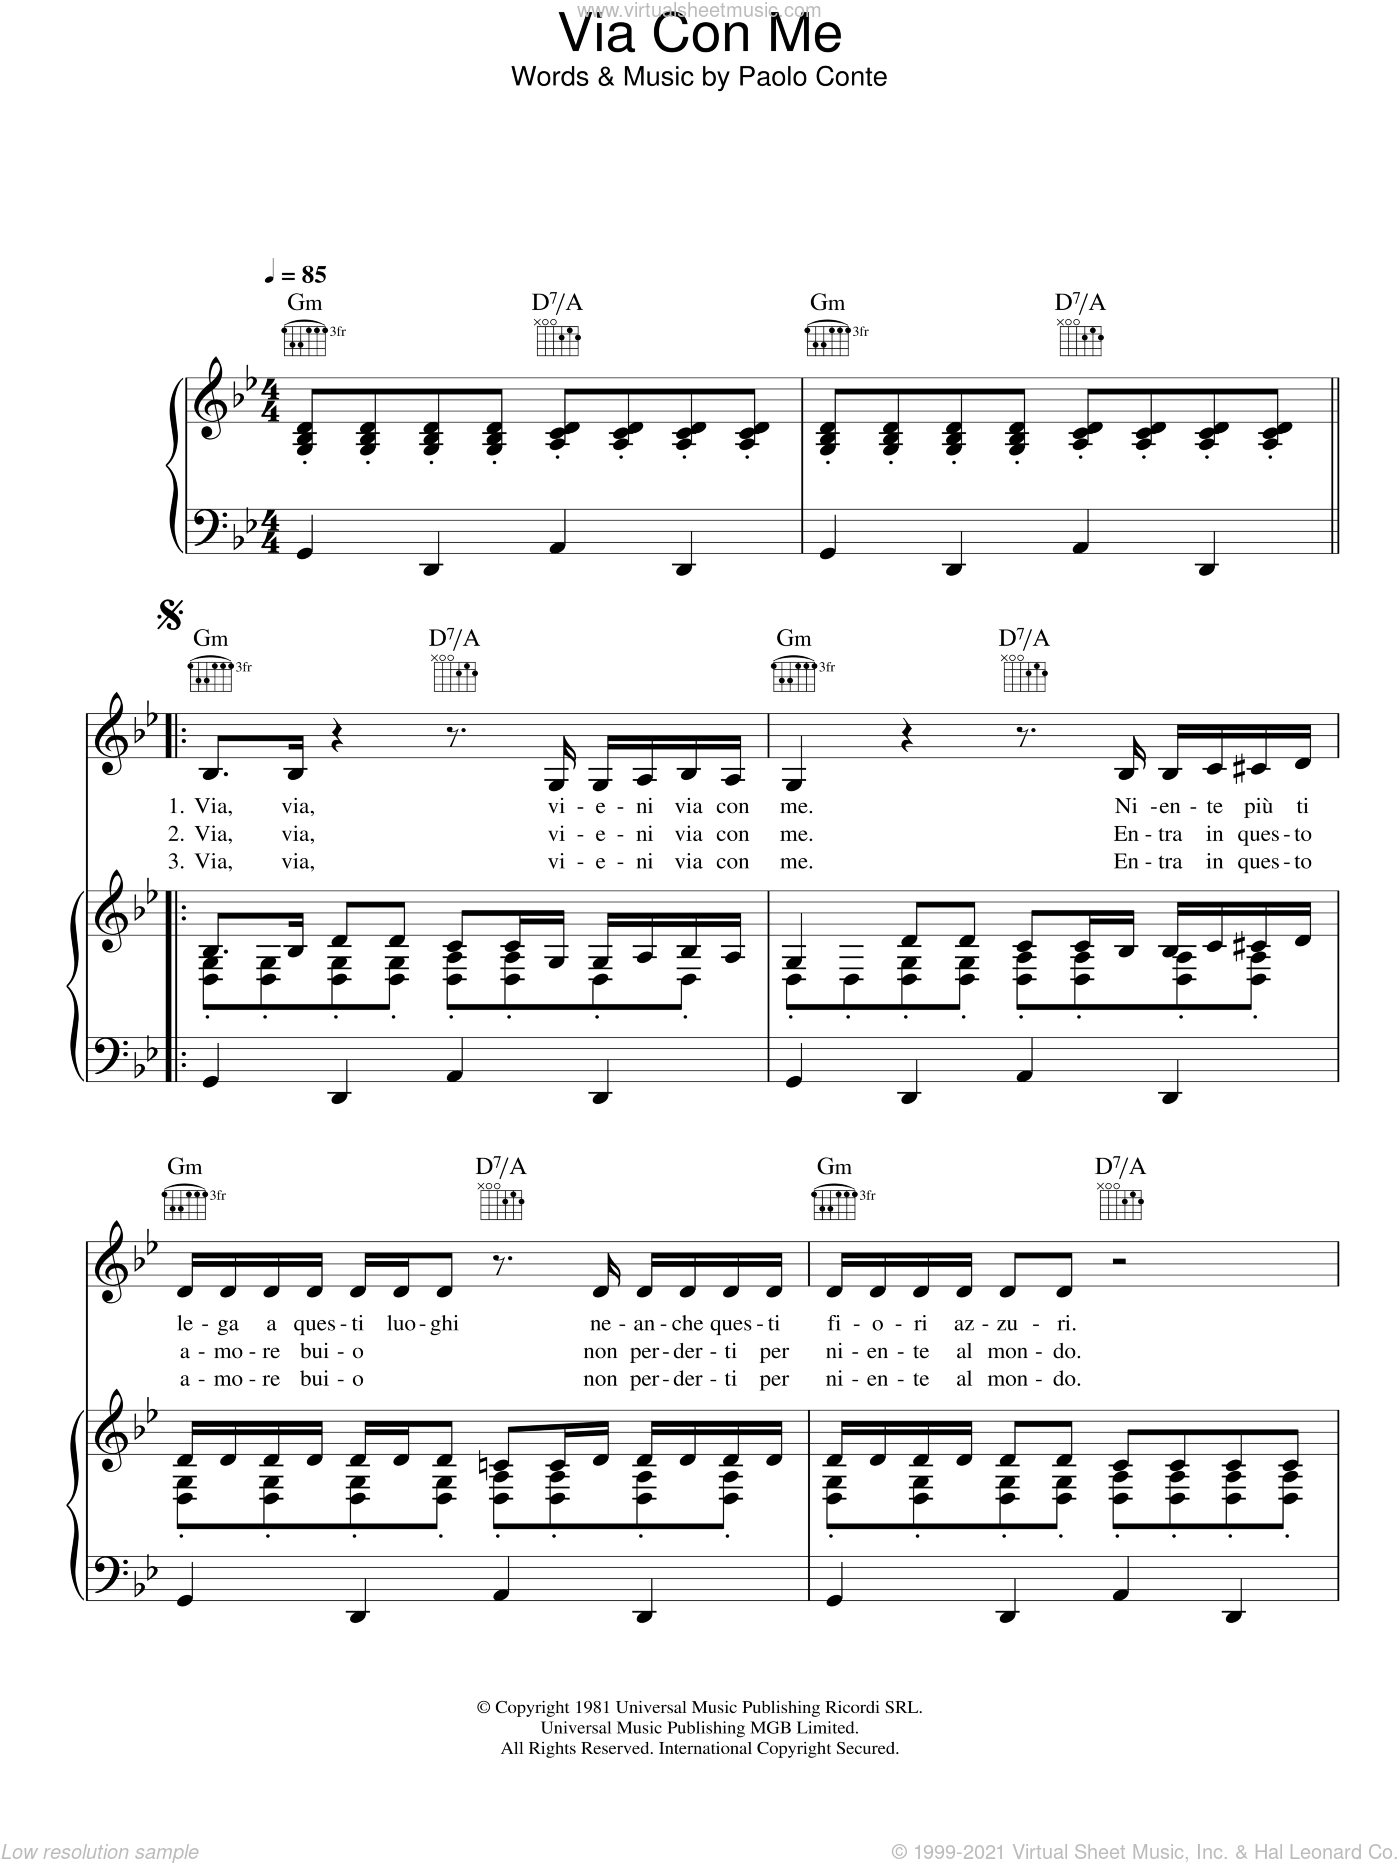 Via Con Me sheet music for voice, piano or guitar by Paolo Conte, intermediate